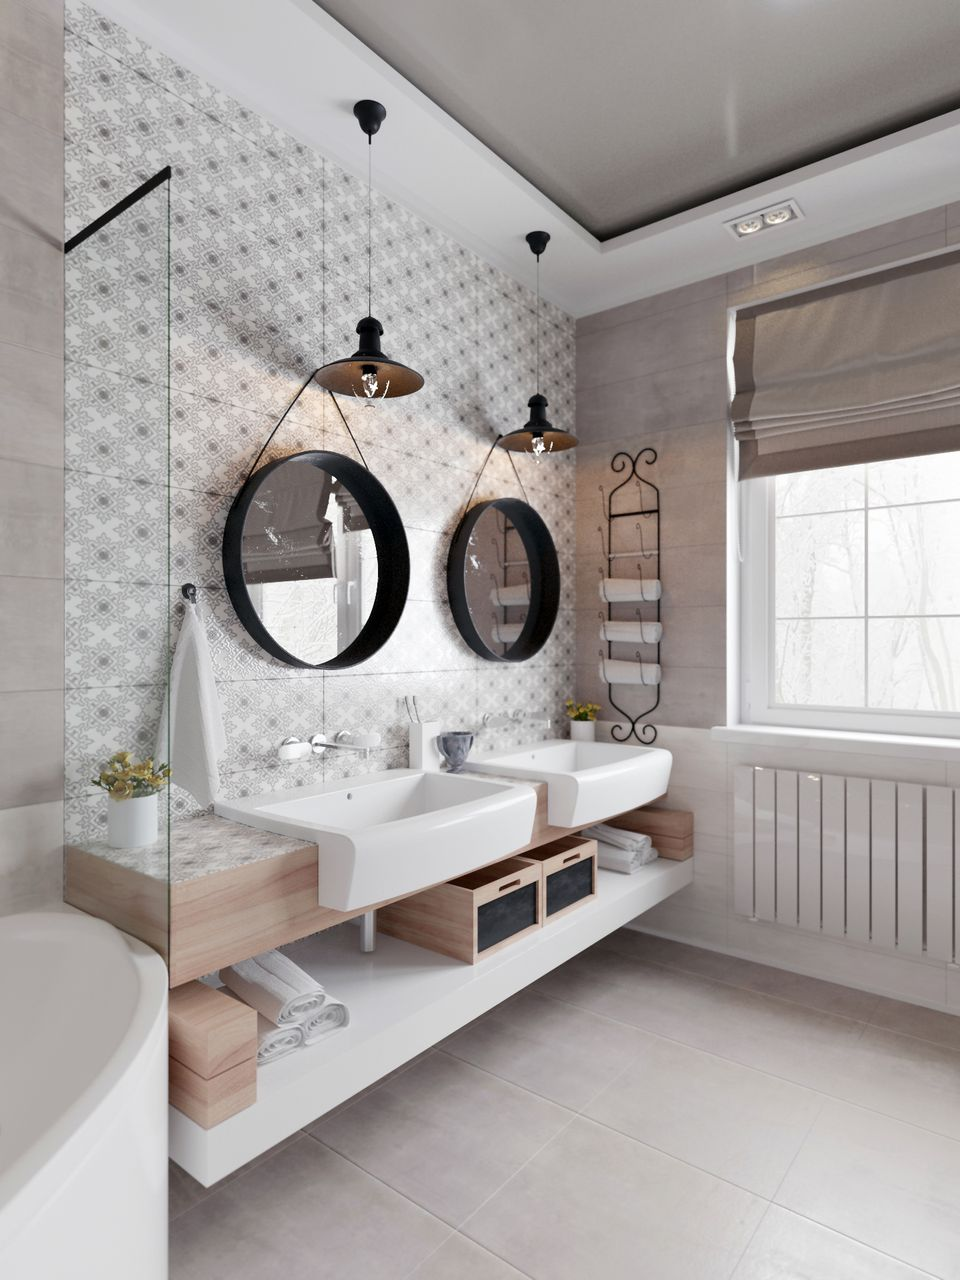 11 Mesmerizing Scandinavian Bathroom Design Ideas ➤ To See More News About  Luxury Bathrooms In The